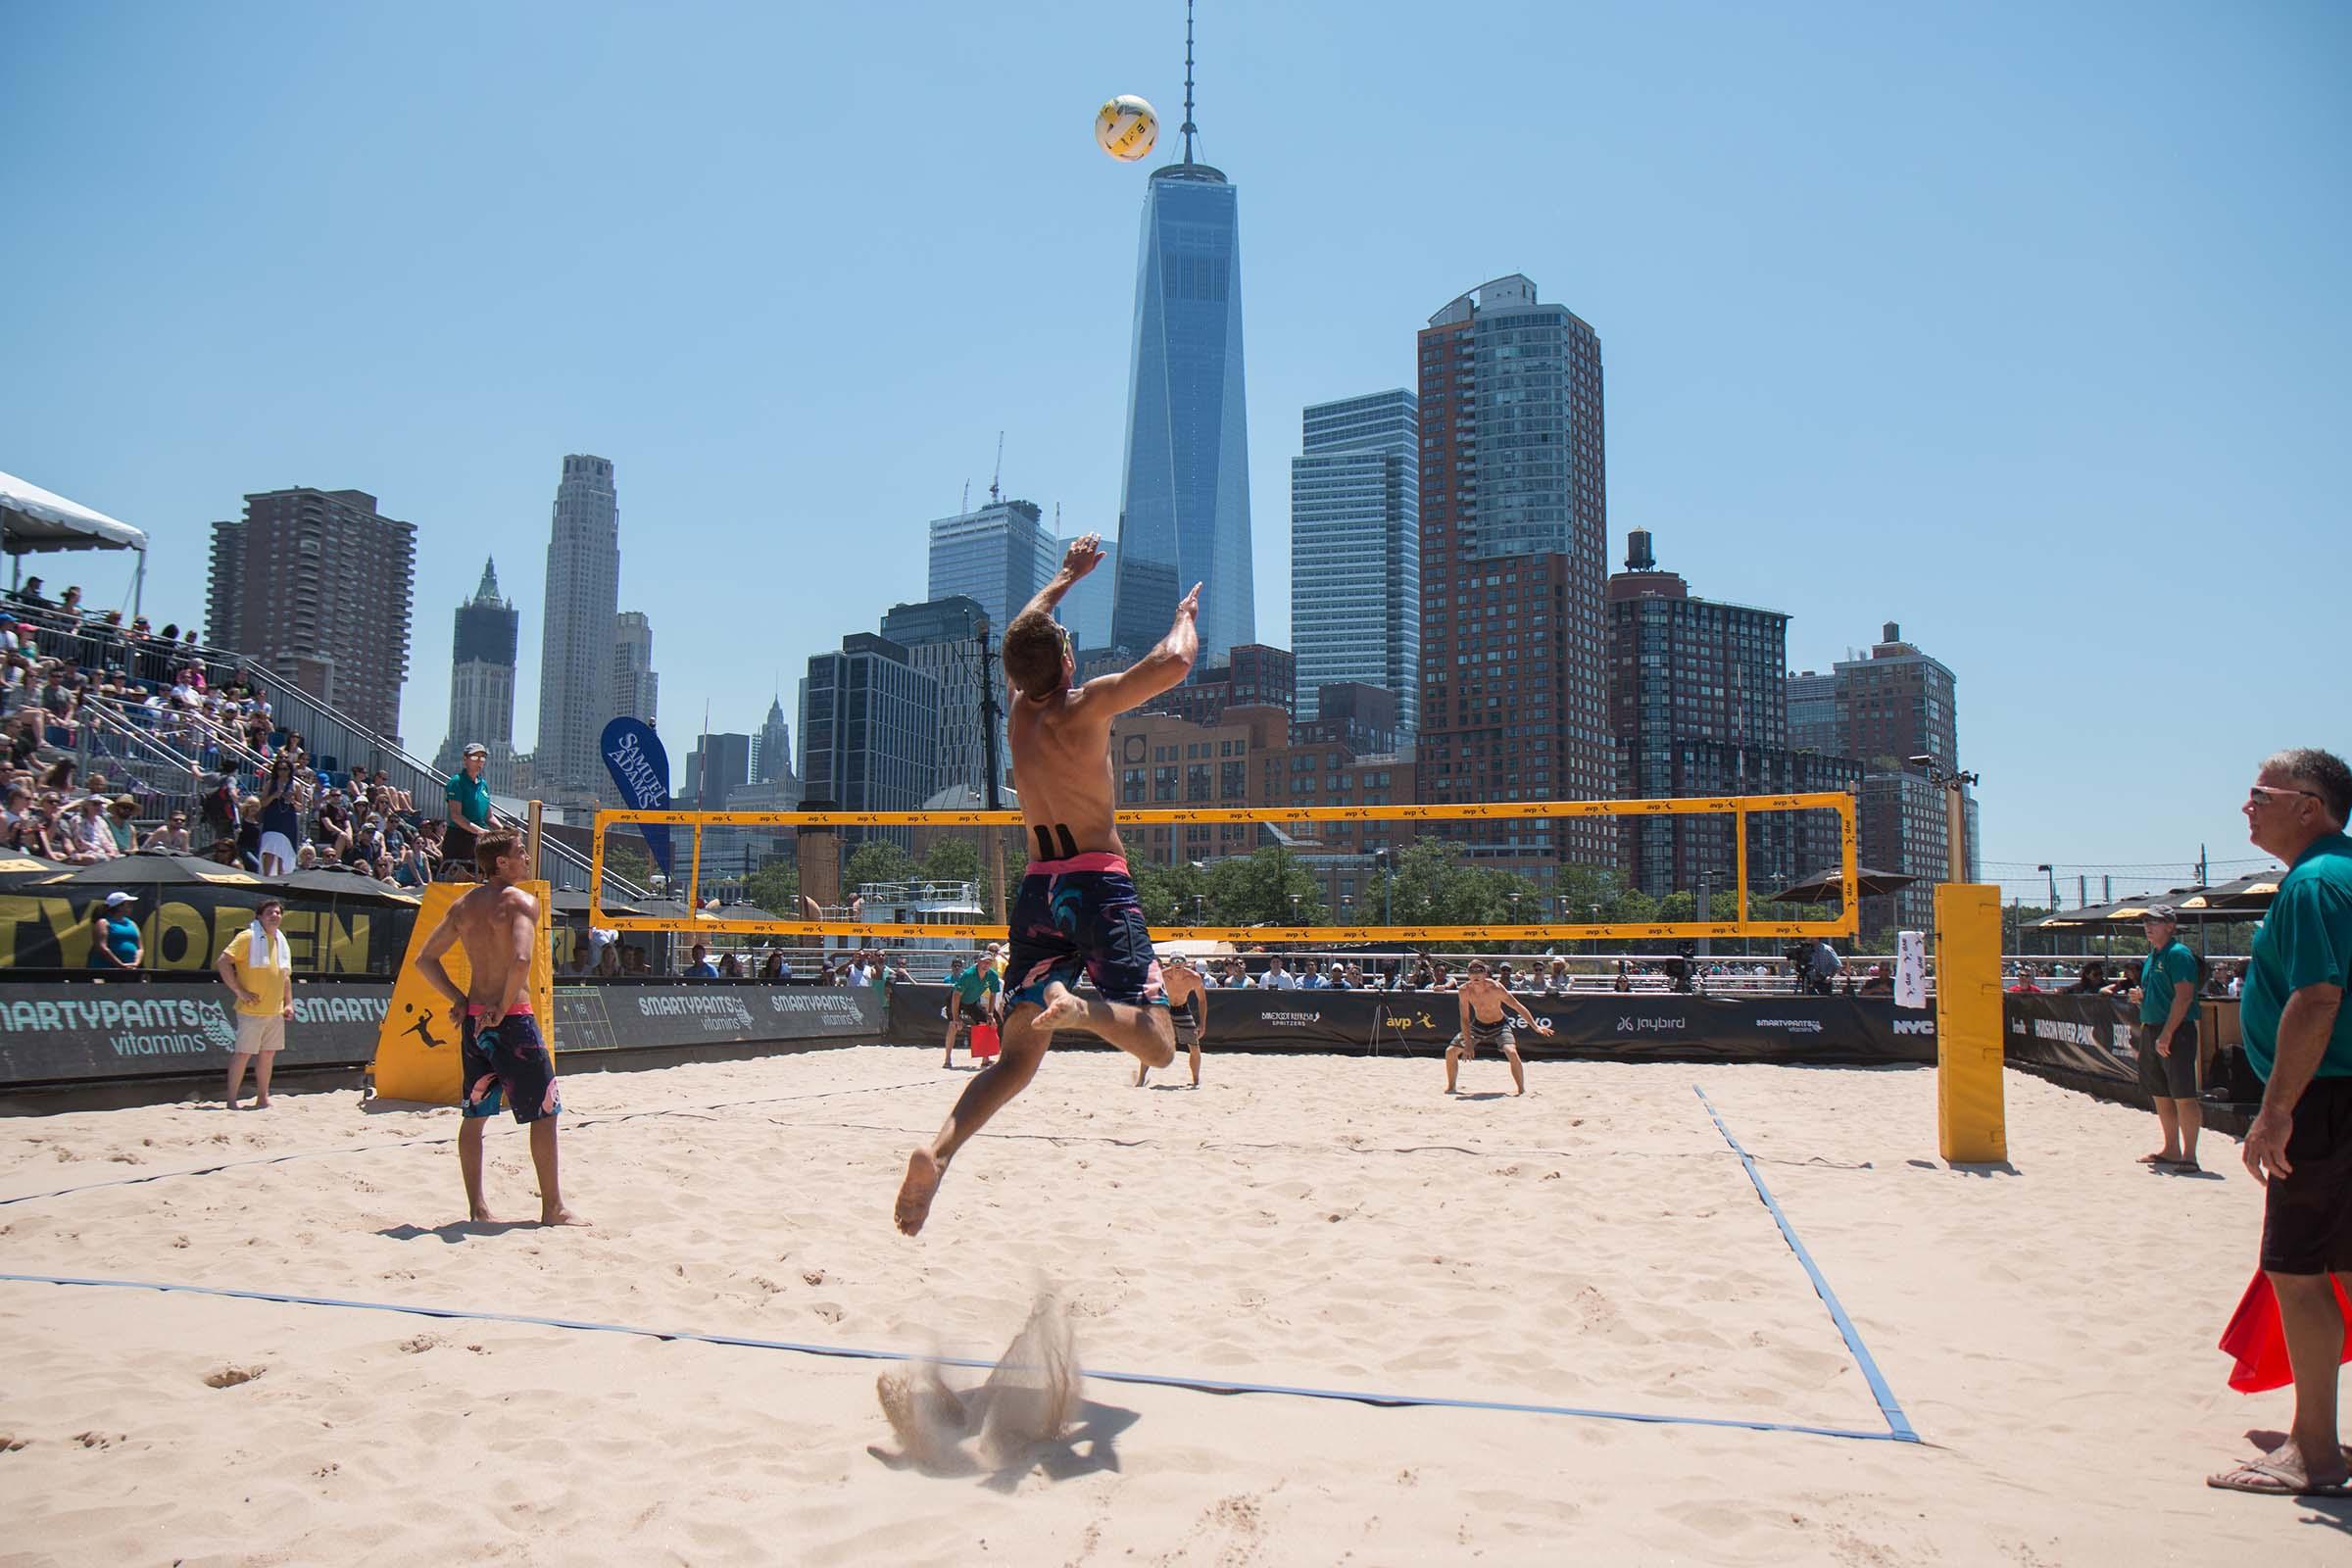 A volleyball player jumps and flies towards the ball to hit it over the net